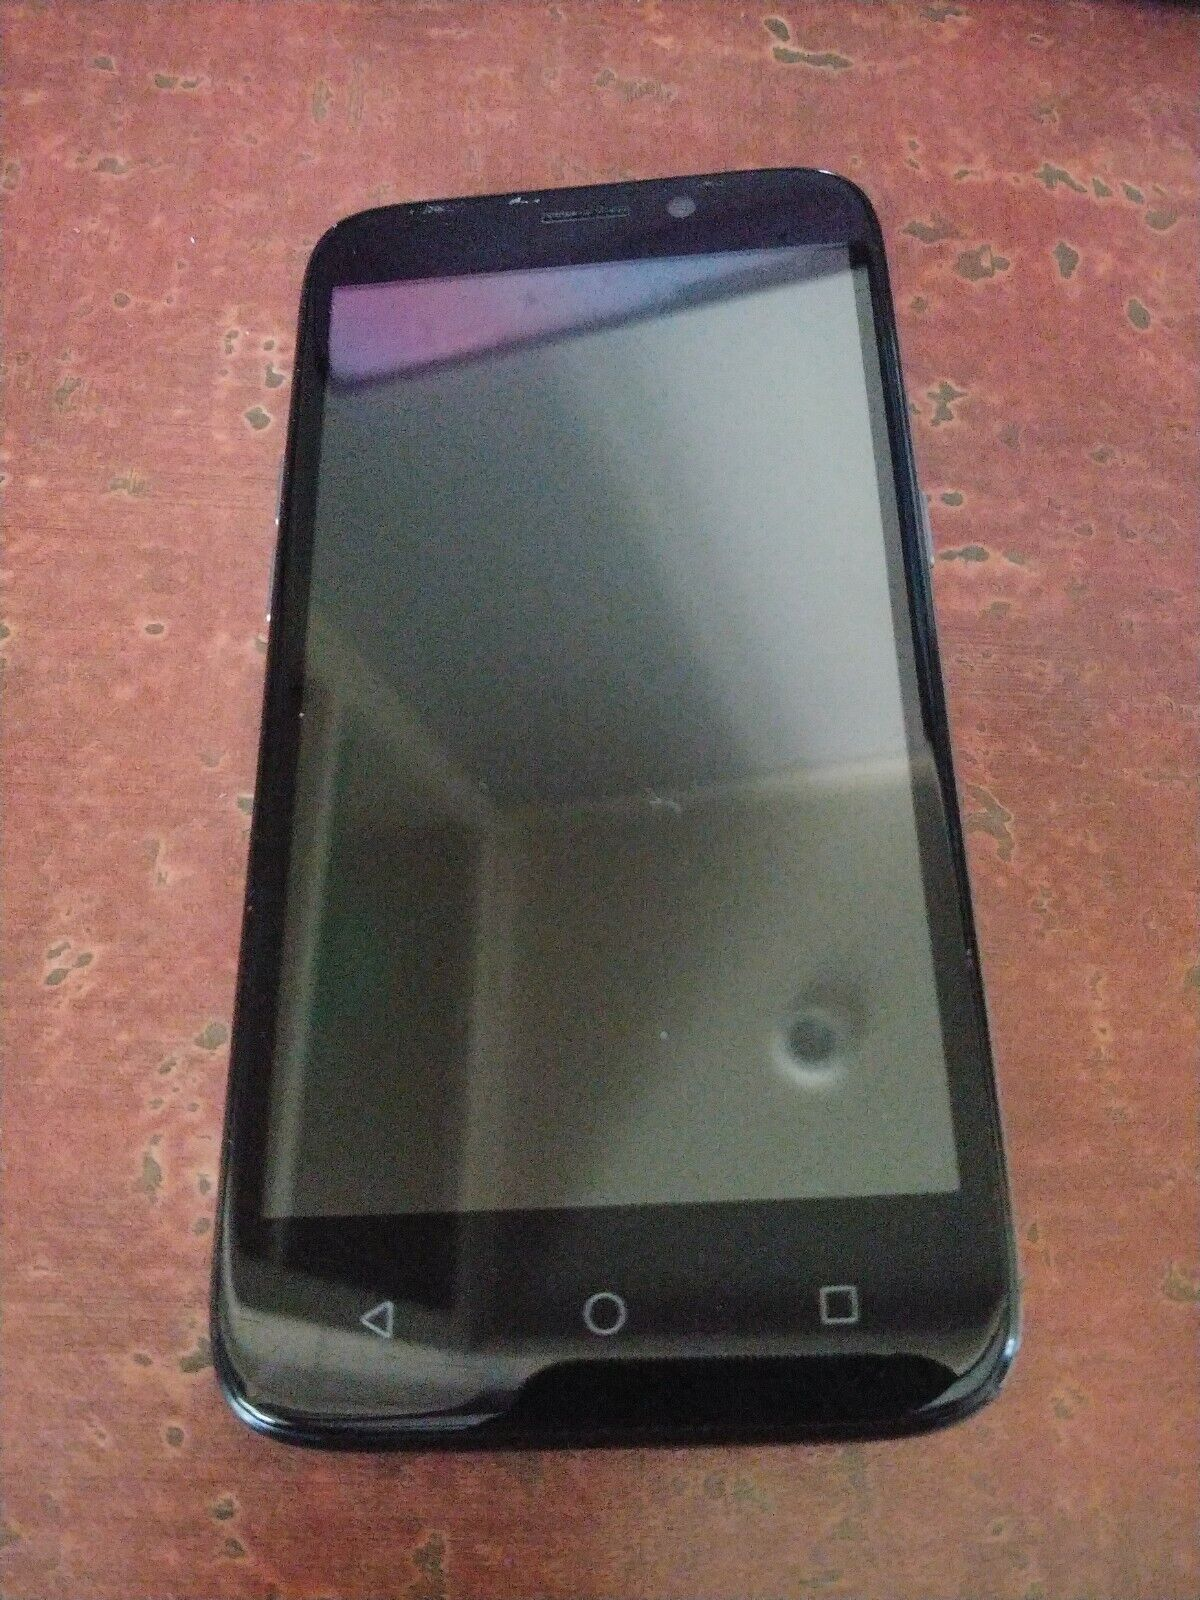 UNLOCKED / AT T ZTE Z835 Maven 8G LTE GSM Android Smart Camera Cell Phone - $29.00